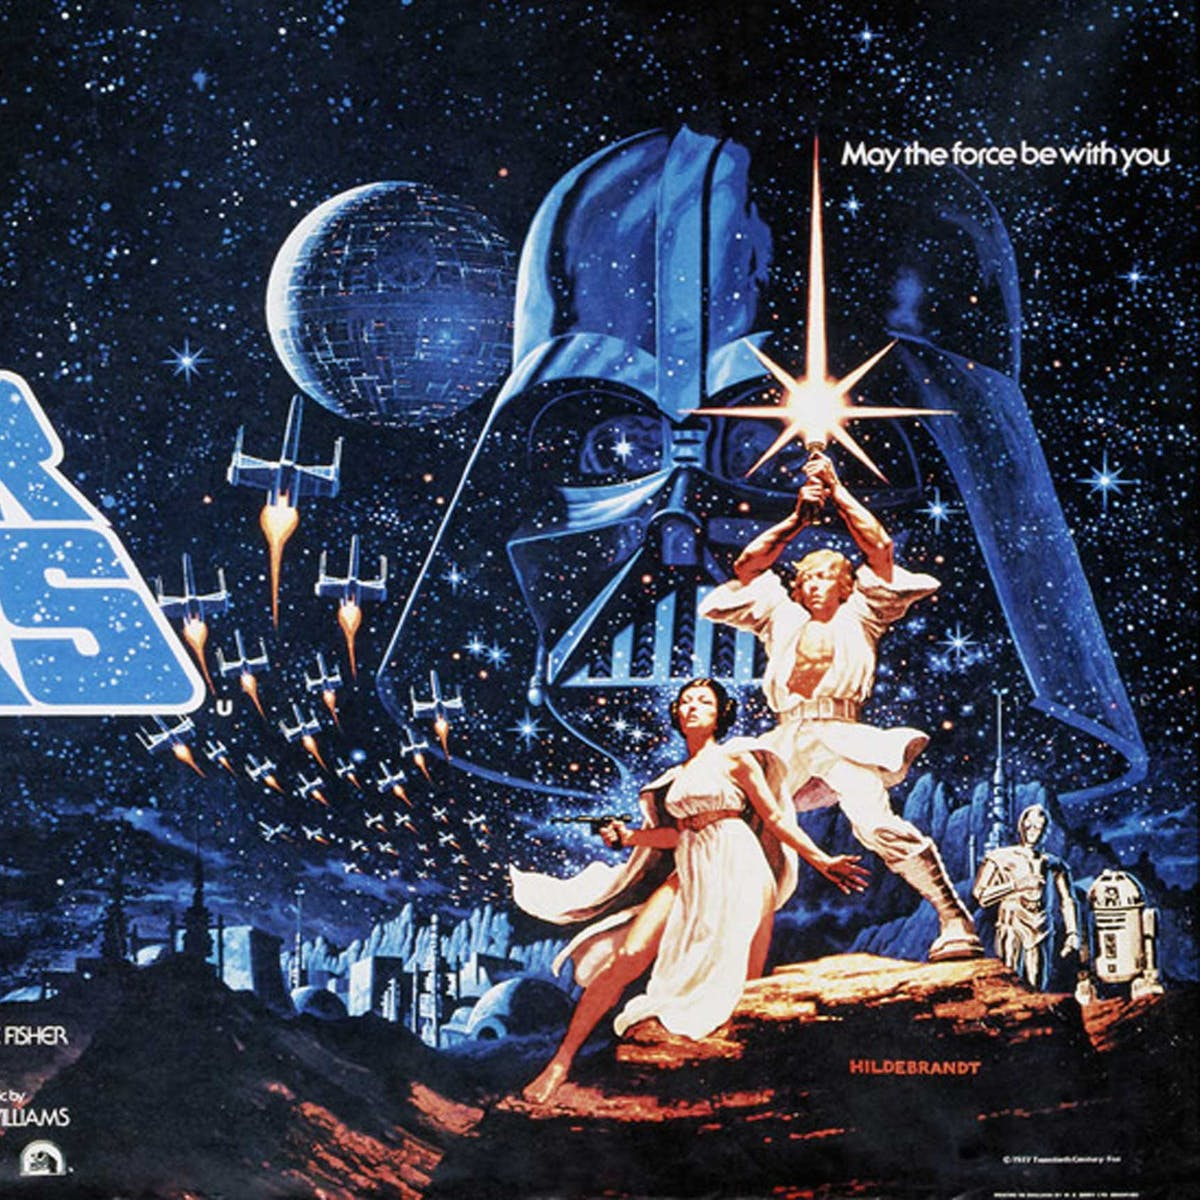 Original Version of 'Star Wars: A New Hope' Could Return to Theaters